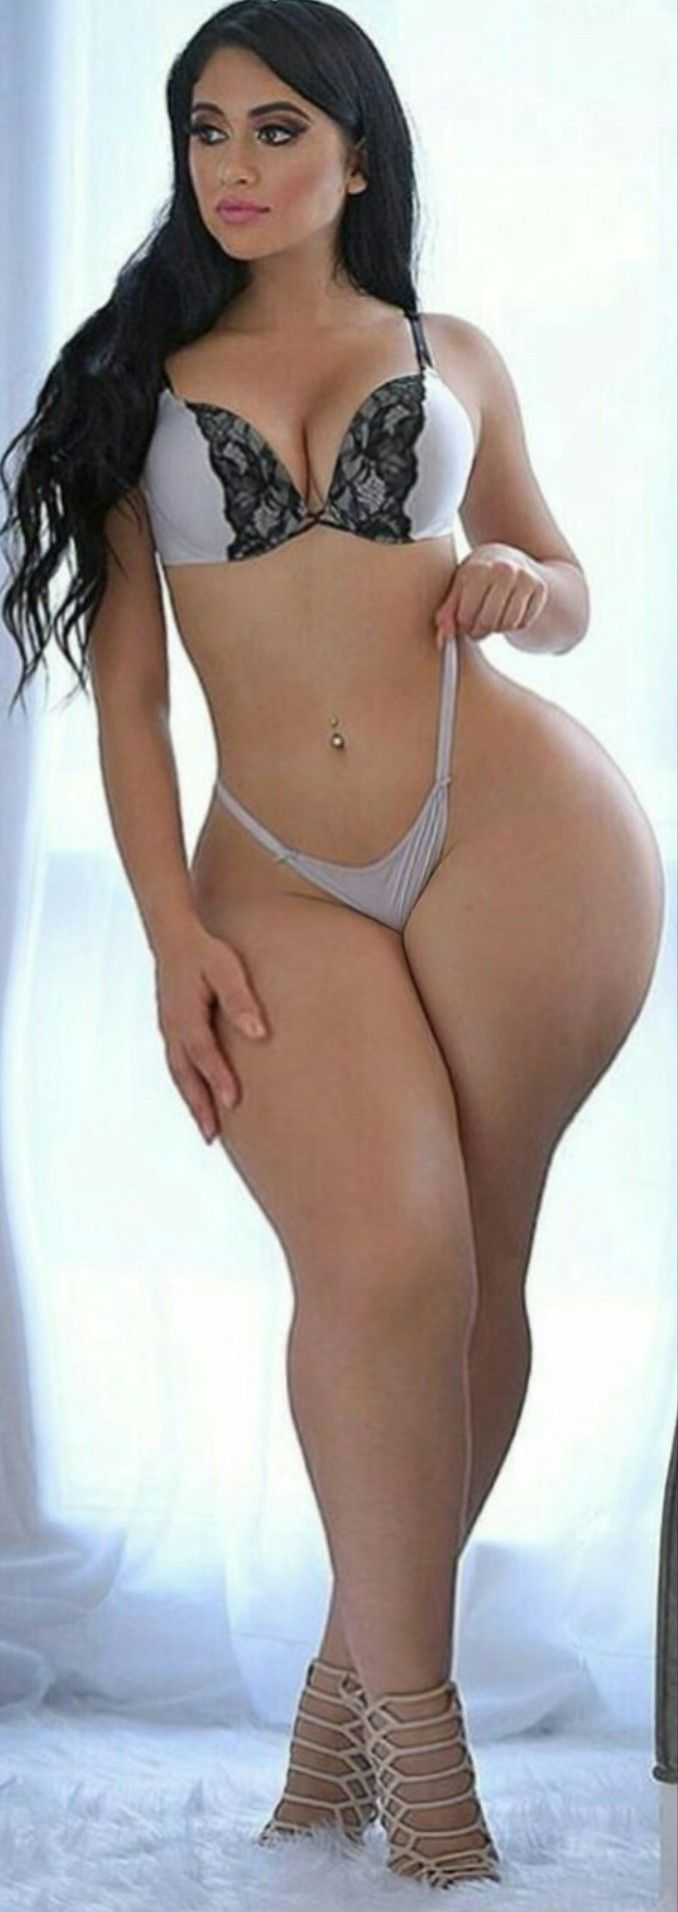 looking for a naughty girl in ingolstadt